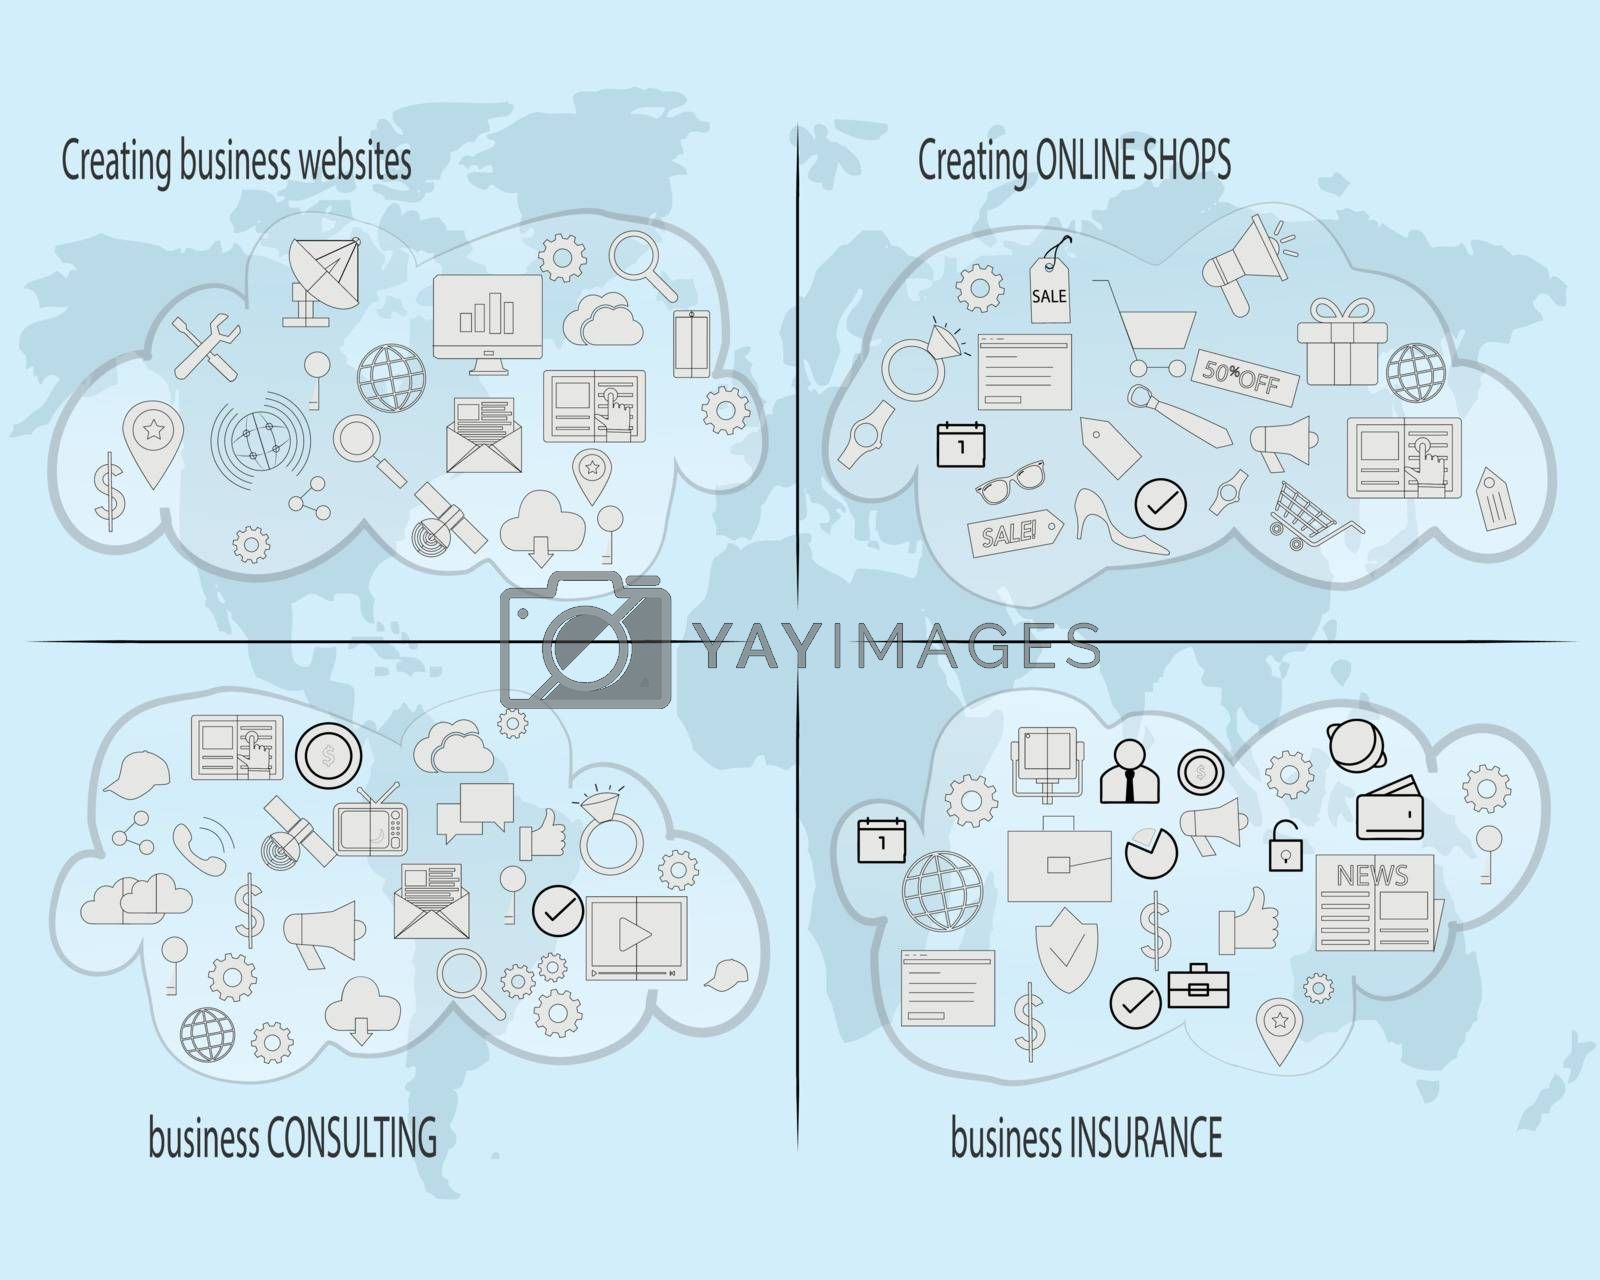 Set of icons for creating businness online and get your website or online shope worldwide growth and profit